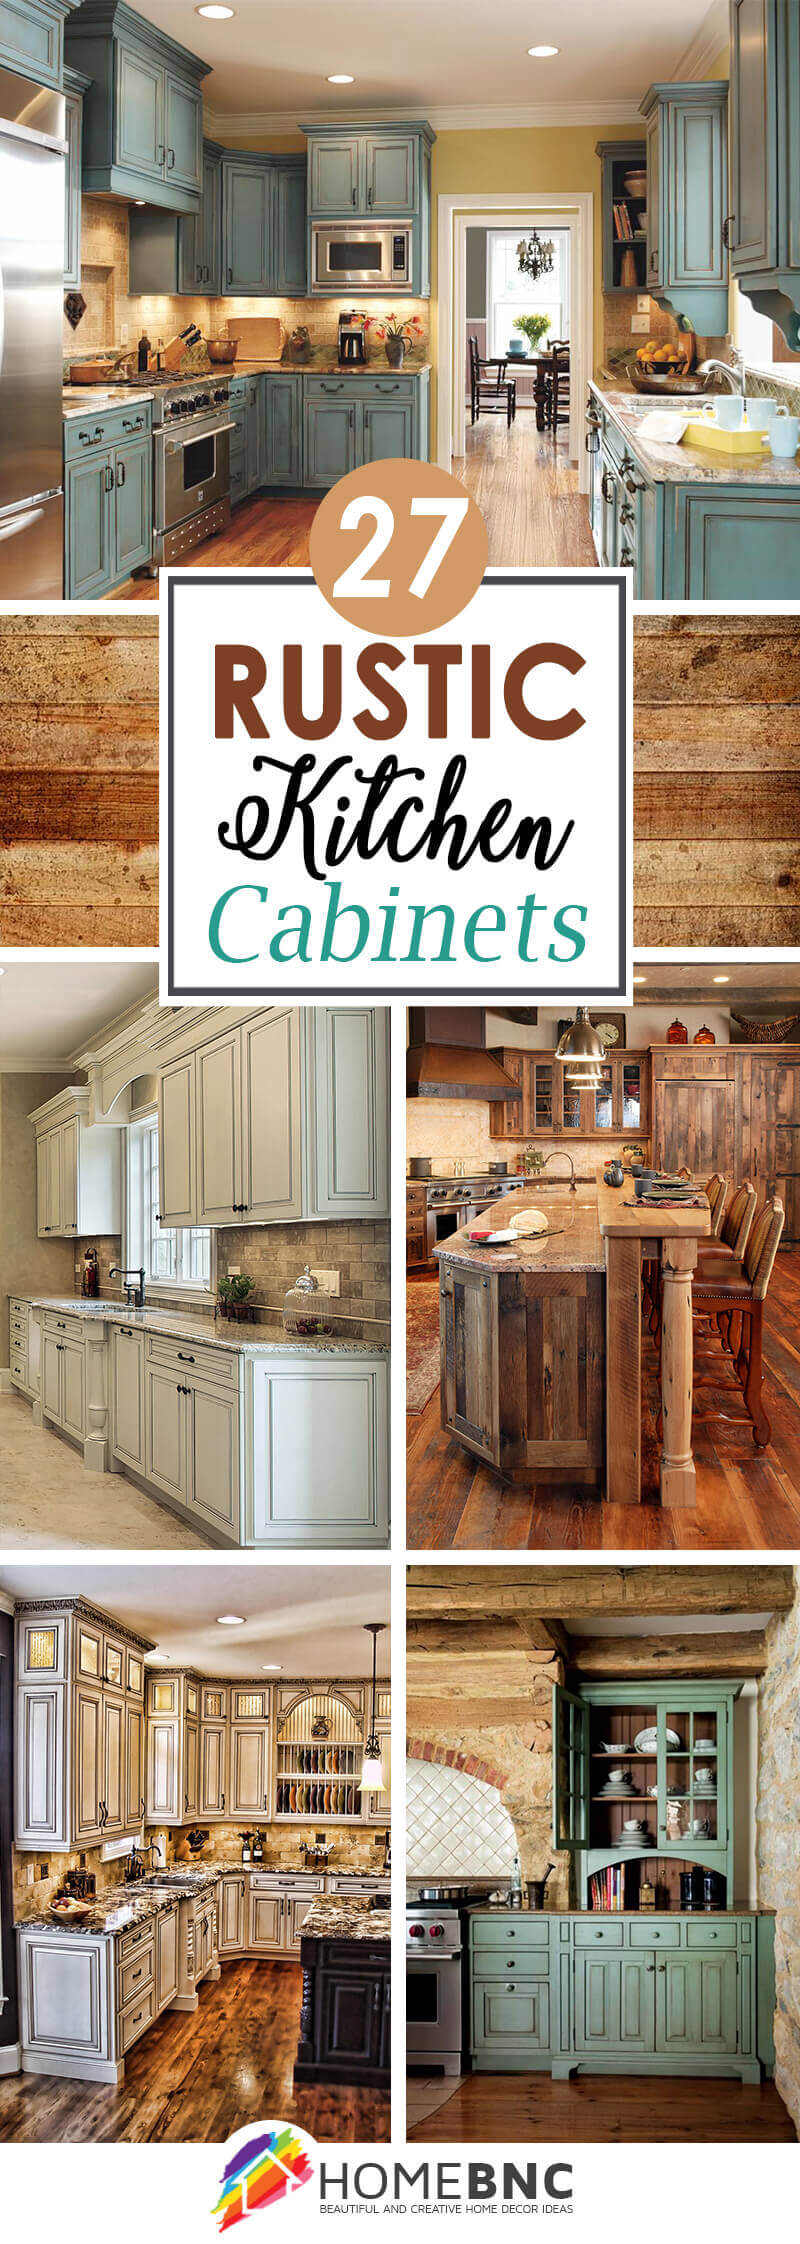 27 Best Rustic Kitchen Cabinet Ideas And Designs For 2021